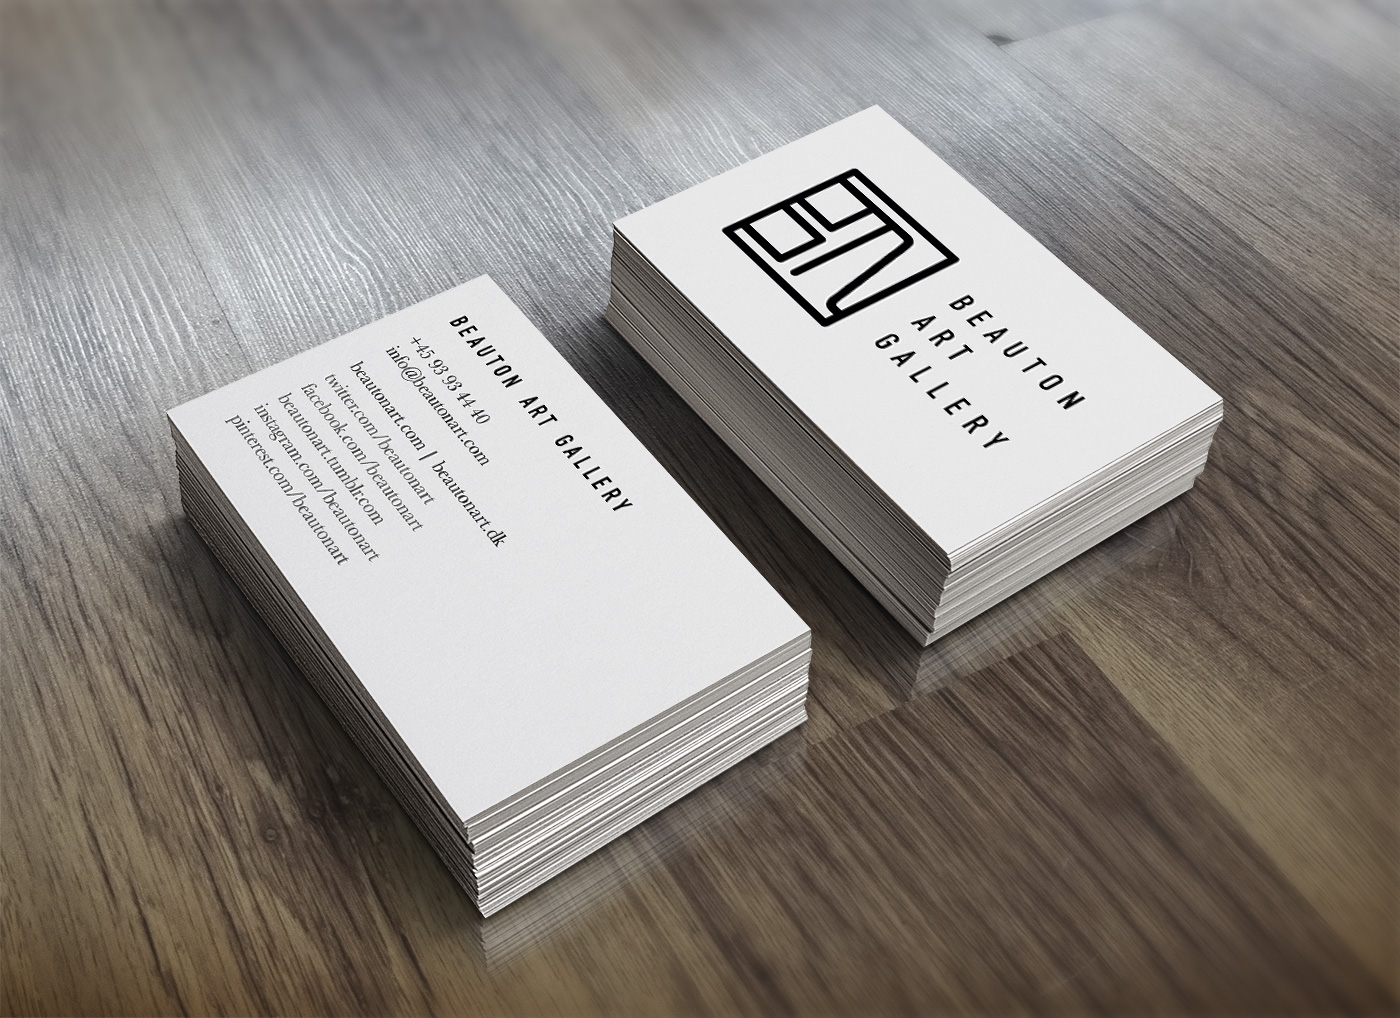 beauton_art_gallery_business_card_2_visual-identity-design-poster-in-gallery-freelance-graphic-designer-artist-marie-brogger